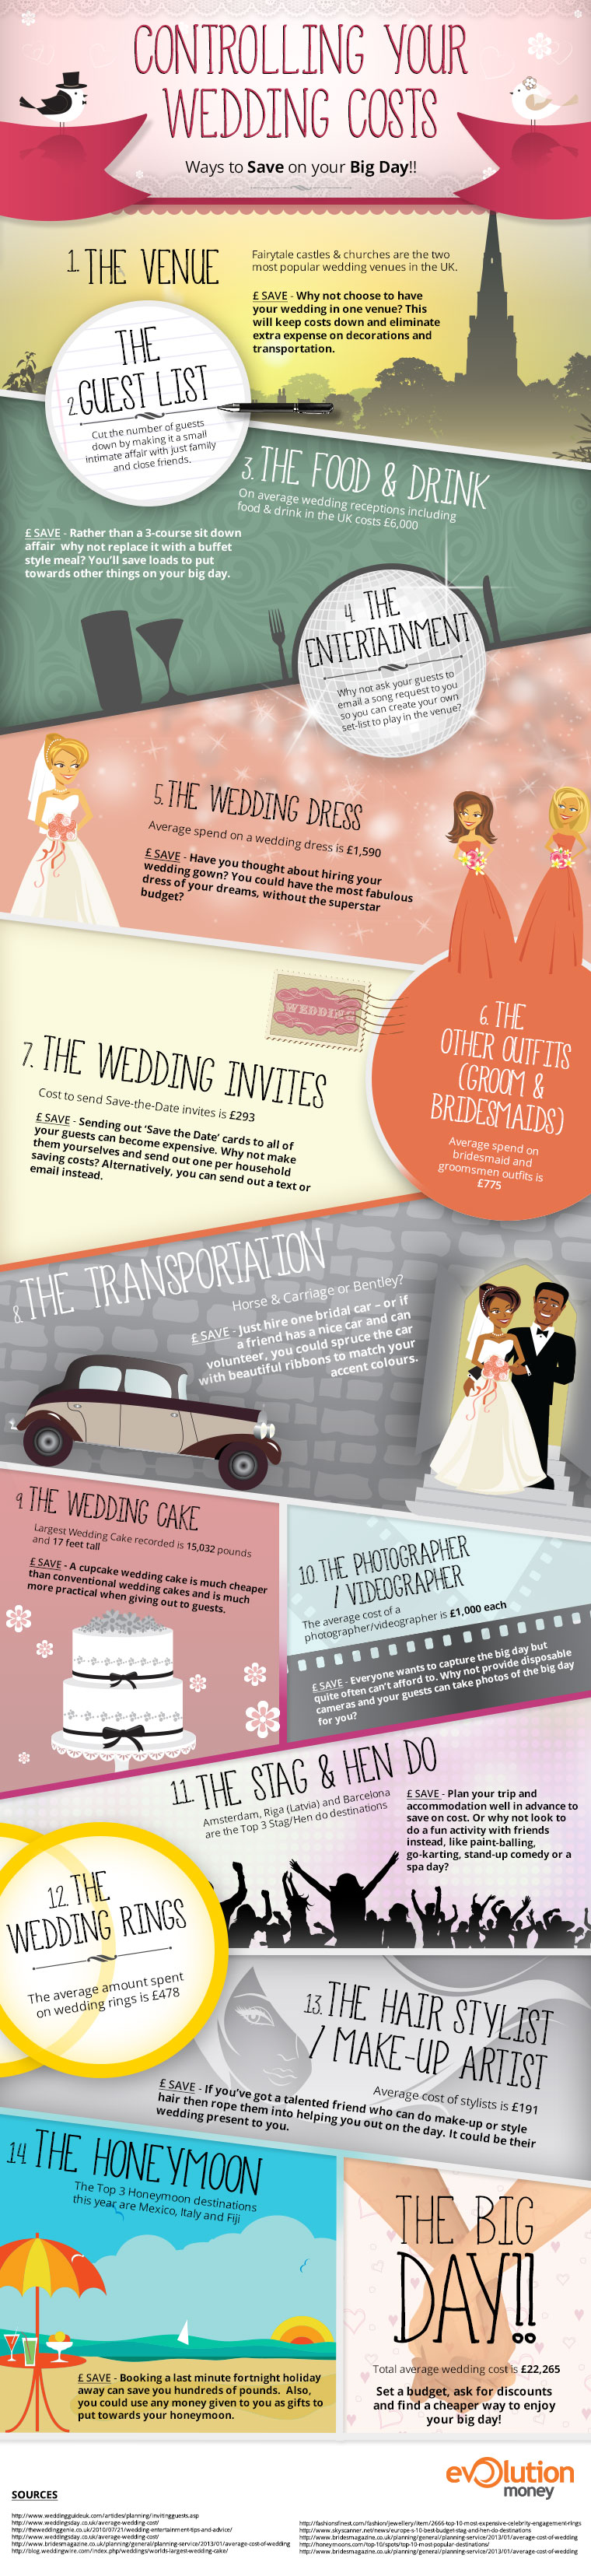 Getting married: can we afford it?